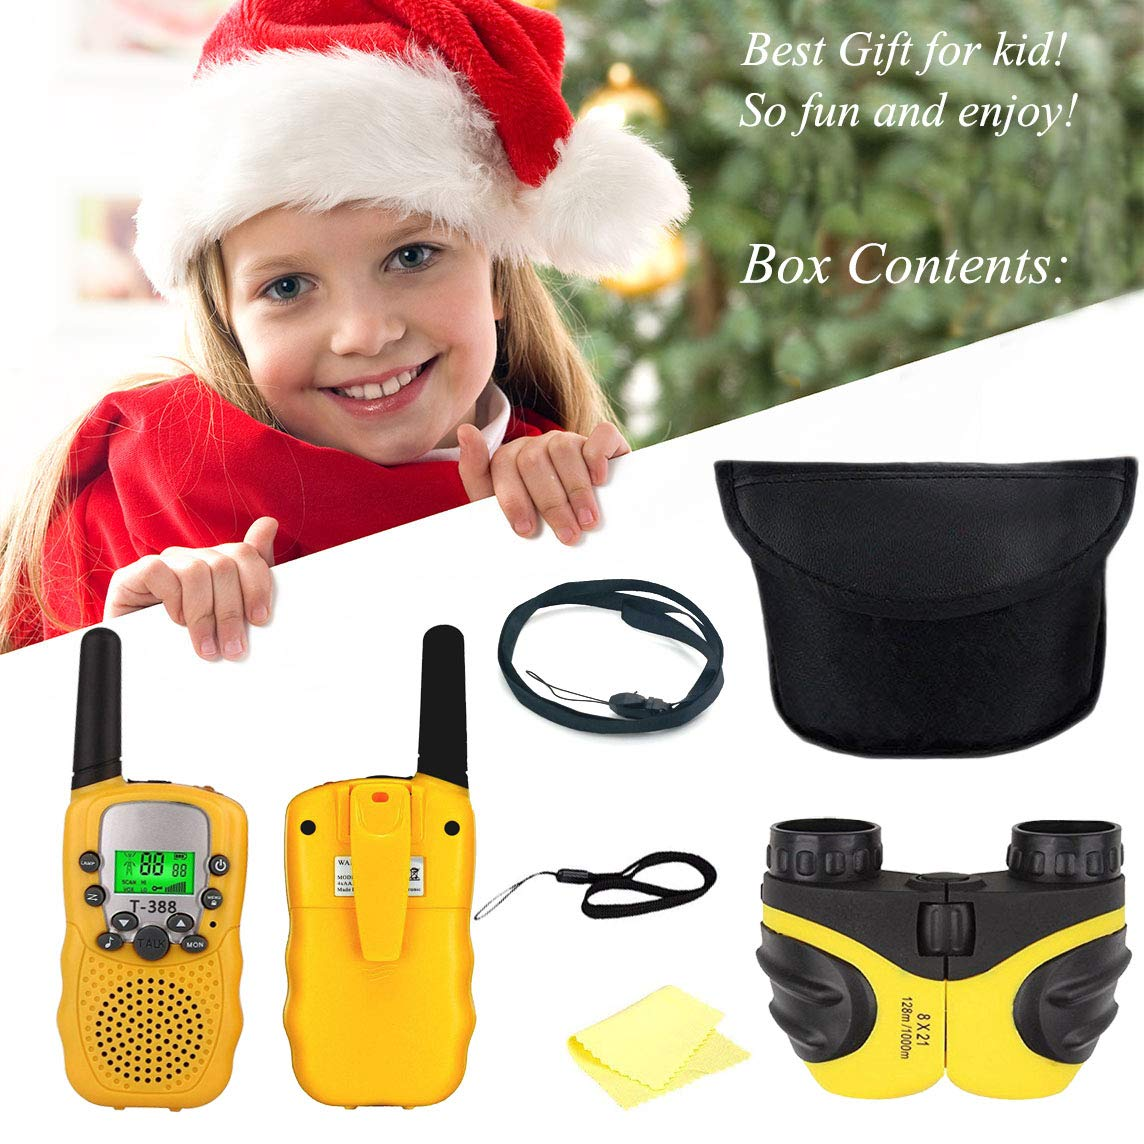 XIYITOY Best Gifts for Kid,Gifts for Girl 4-8 Year Old, Walkie Talkies Toys for Children with Built in Flash Light, 8 X 21 Kids Binoculars for Children,Cool Toys for 4-5 Year Old Boys,1 Parir(Yellow) by XIYITOY (Image #5)